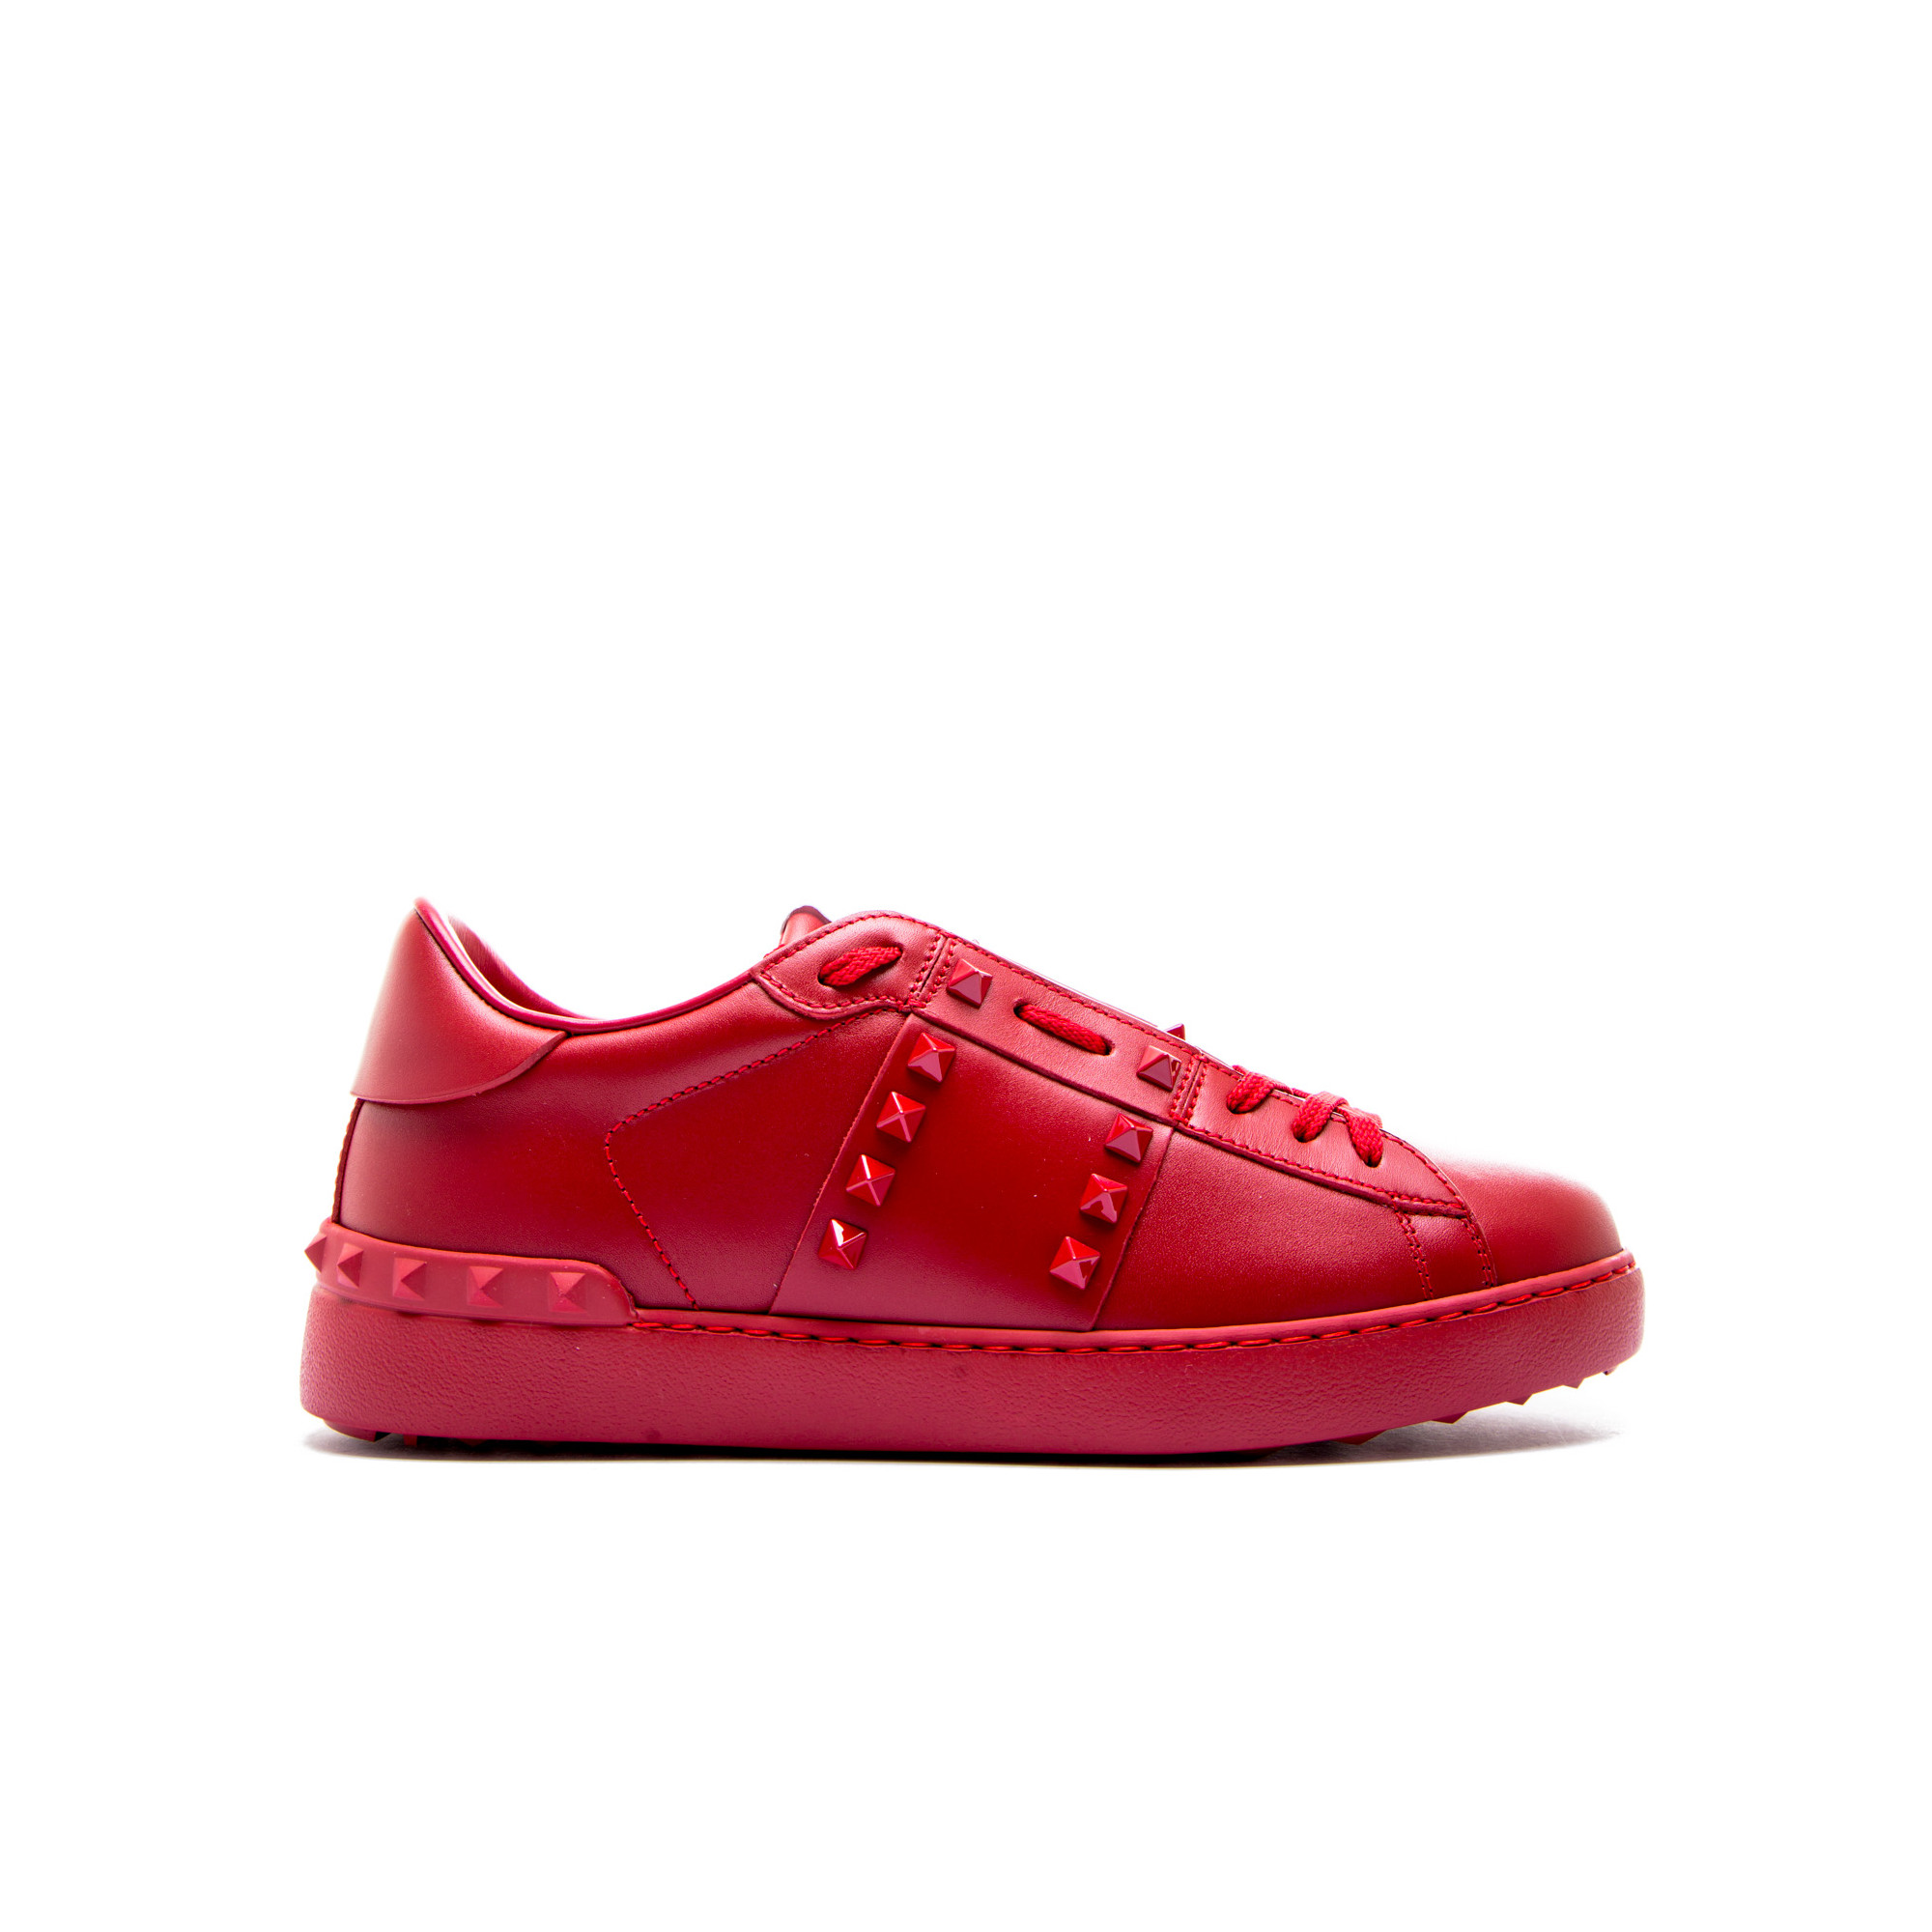 Chaussures Rouge Valentino gZego38Ckb